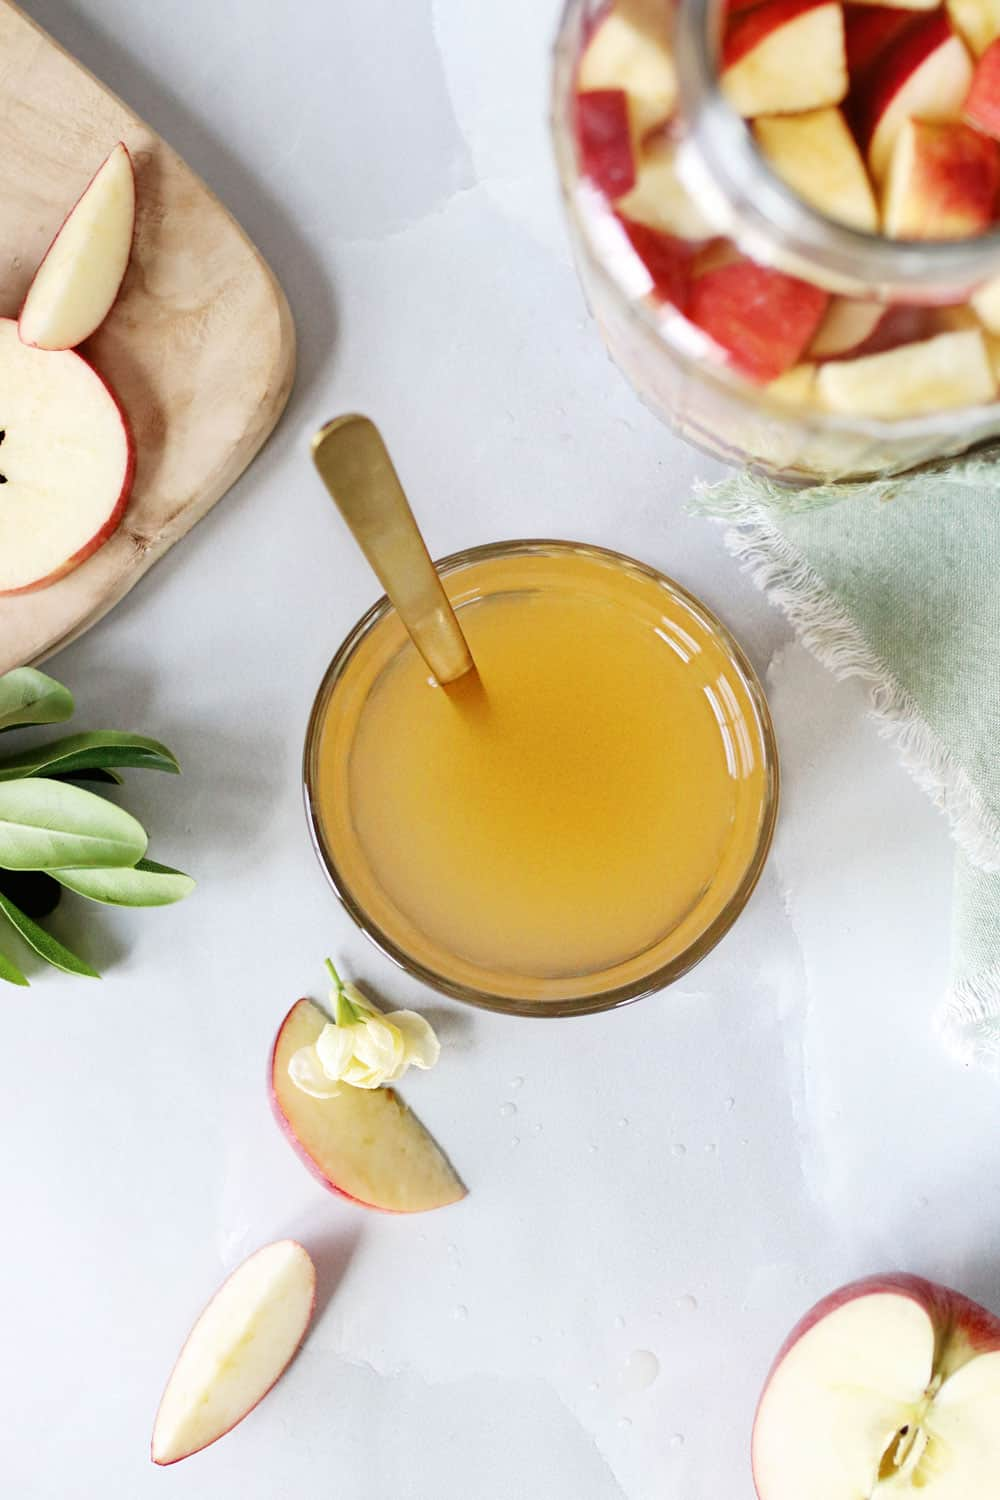 Yes, You Can Make Your Own Apple Cider Vinegar! Here's How.